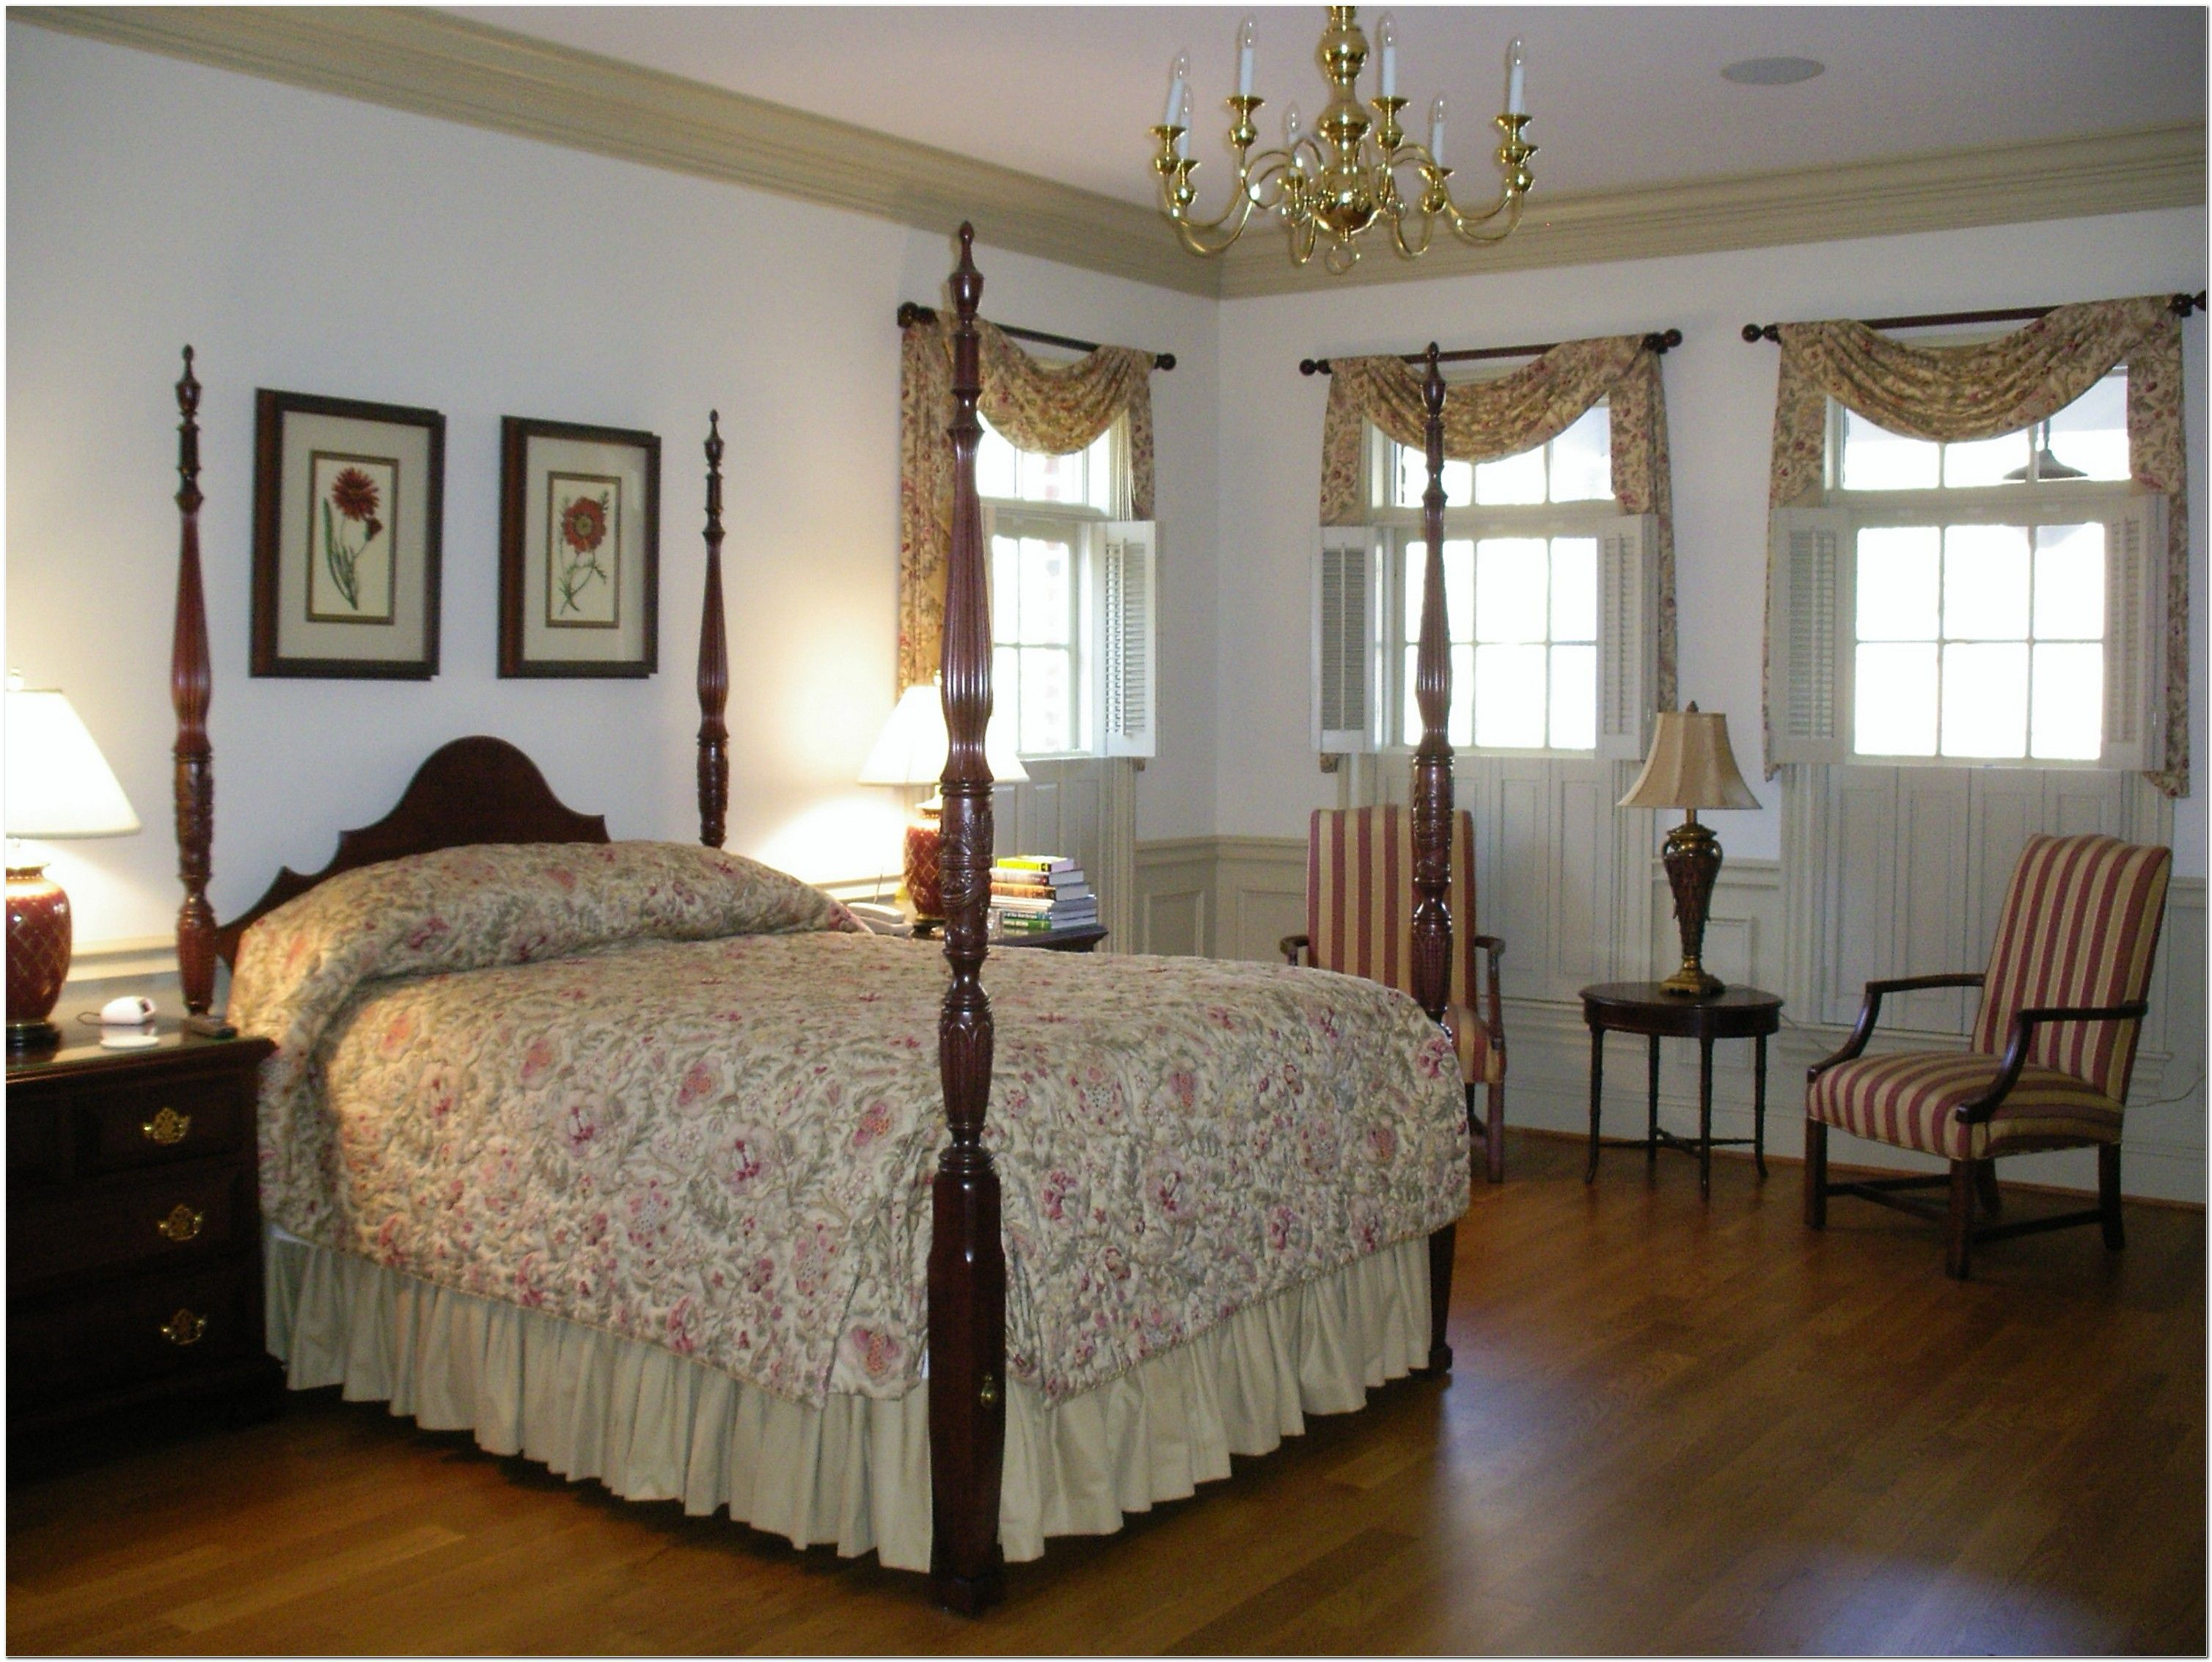 The Charleston Southern Colonial Post And Beam Traditional Bedroom - Residential asid www asid org3016 2266search by image colonial style bedroom with